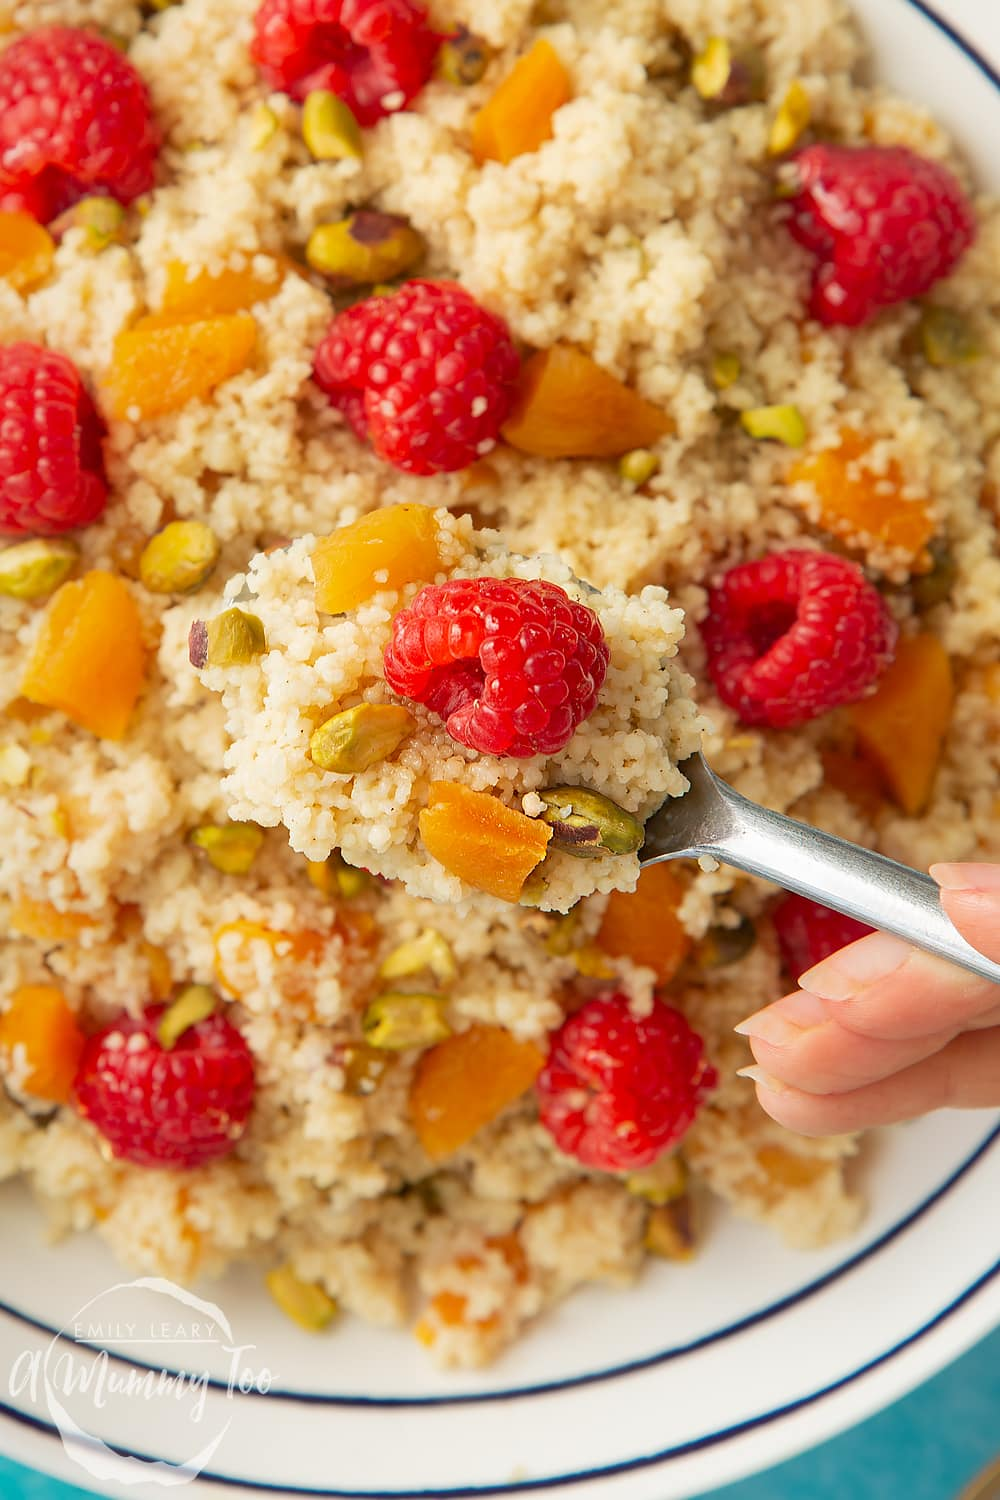 Close up shot of a spoon going into the bowl of sweet breakfast couscous